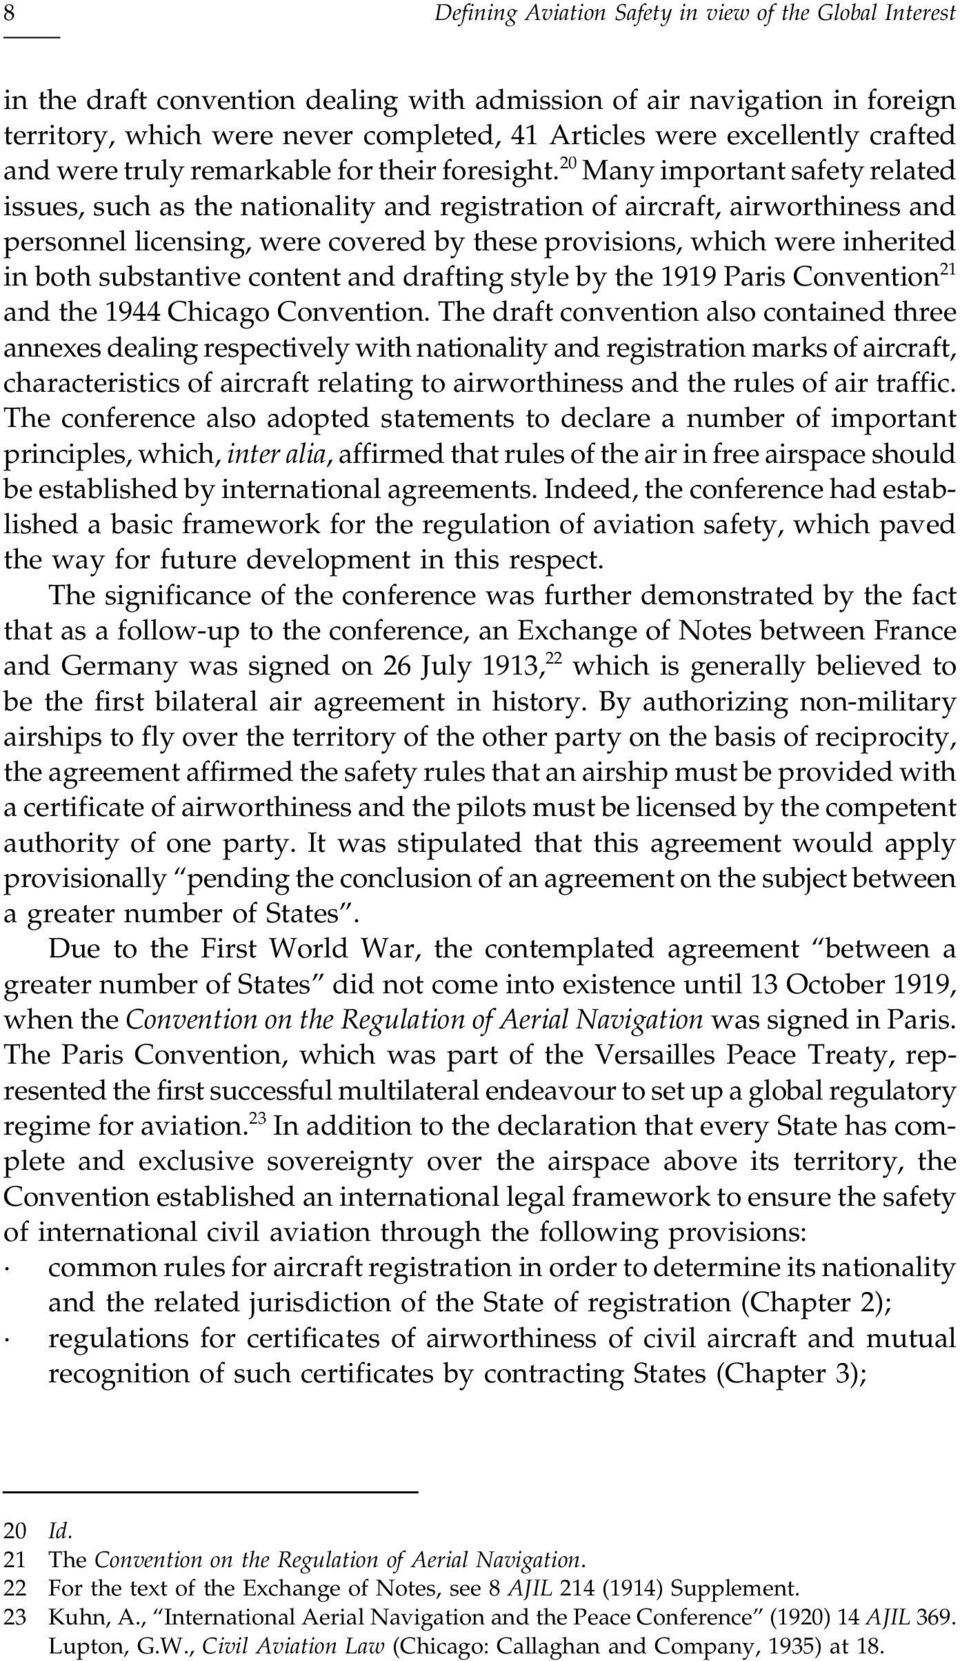 20 Many important safety related issues, such as the nationality and registration of aircraft, airworthiness and personnel licensing, were covered by these provisions, which were inherited in both